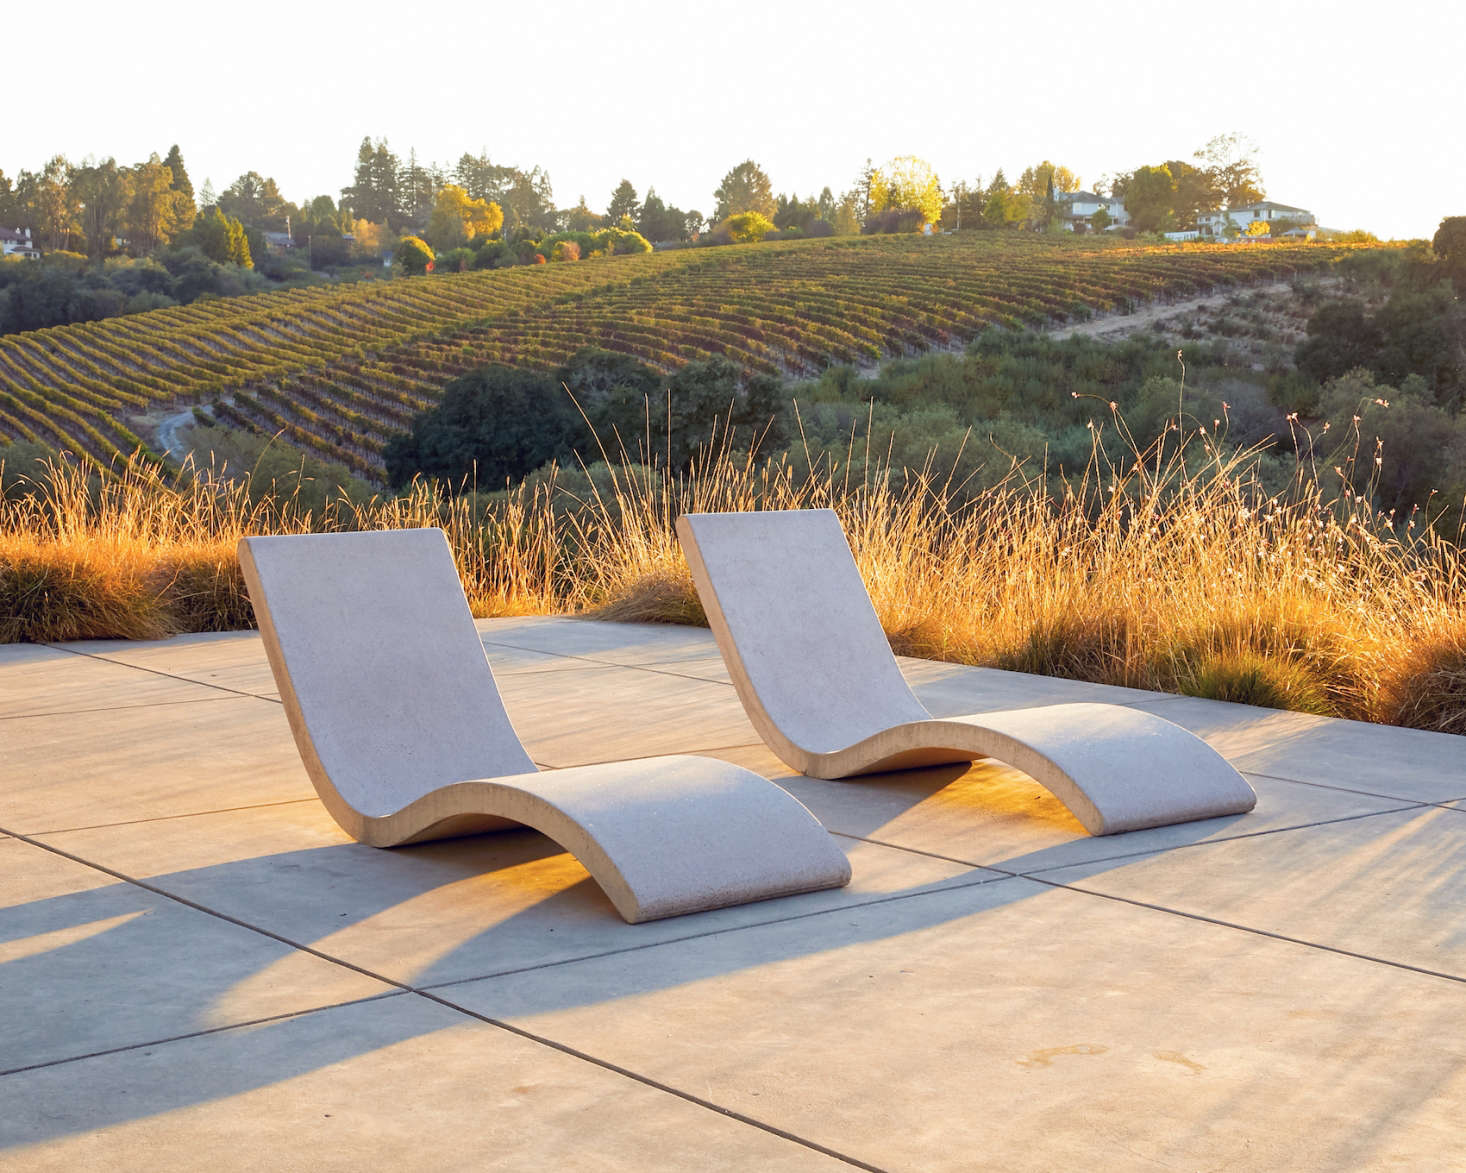 Jenner Lounge chairs are hand-cast by Concreteworks in nearby Alameda, California.